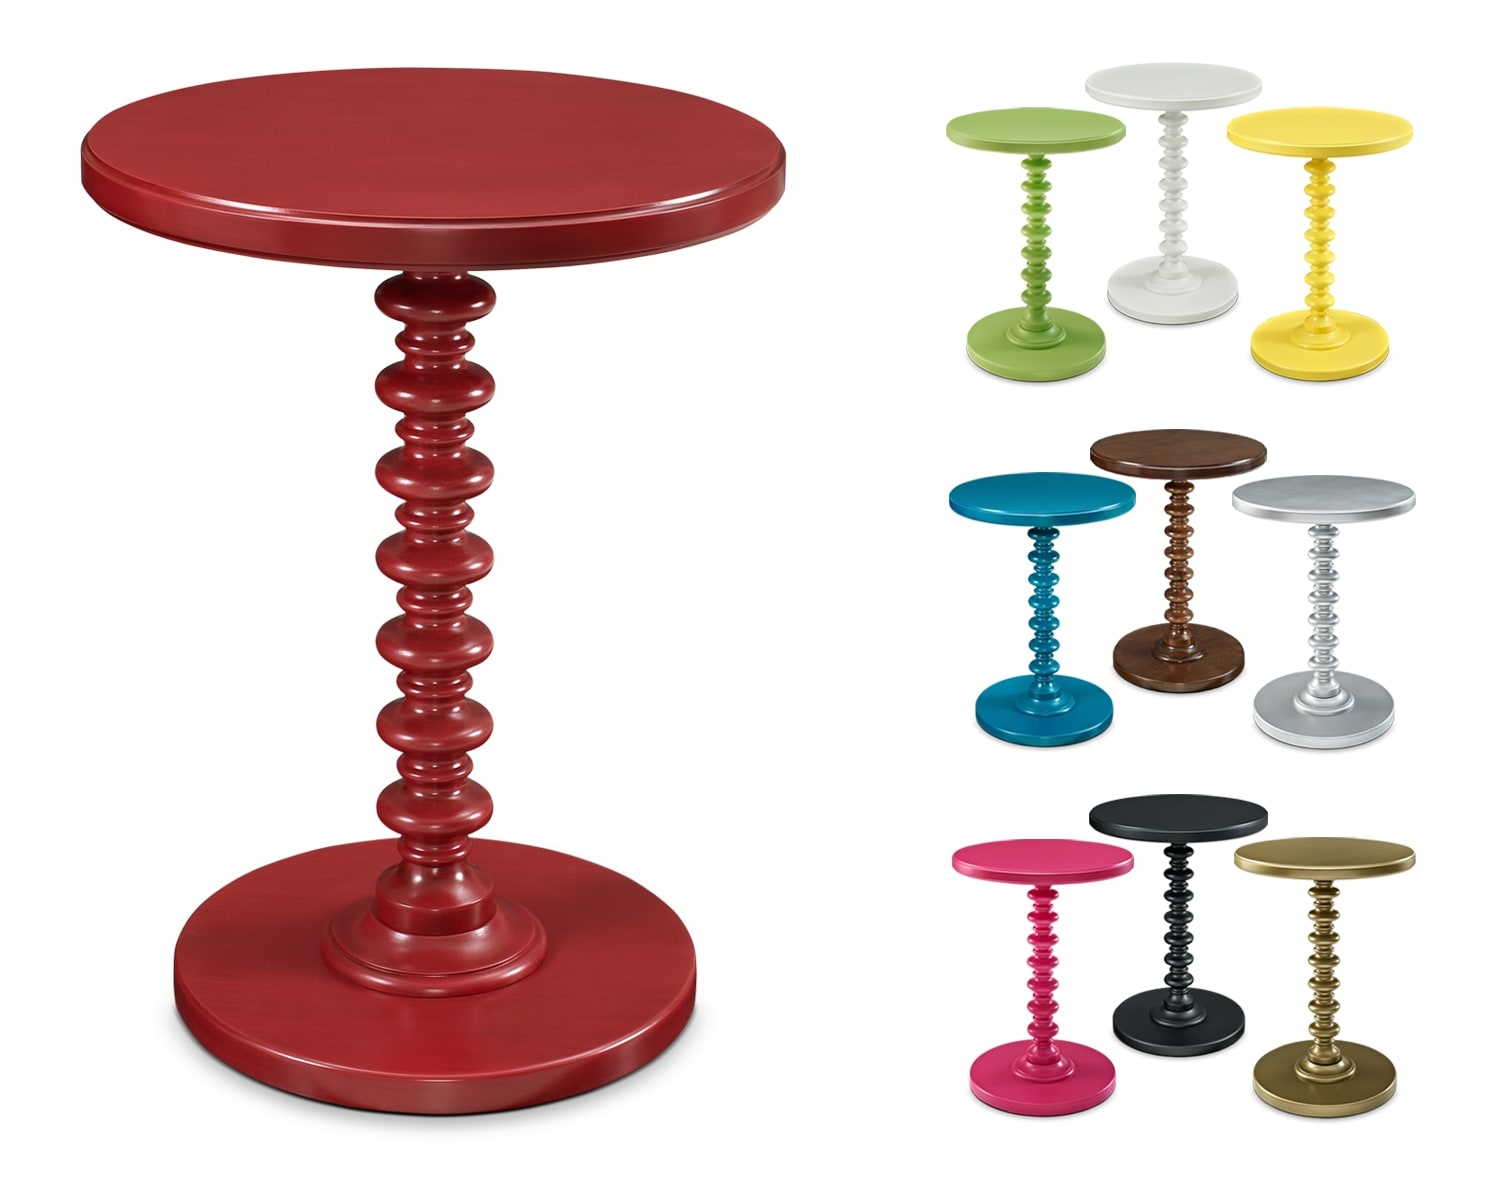 The Kobi Accent Table Collection